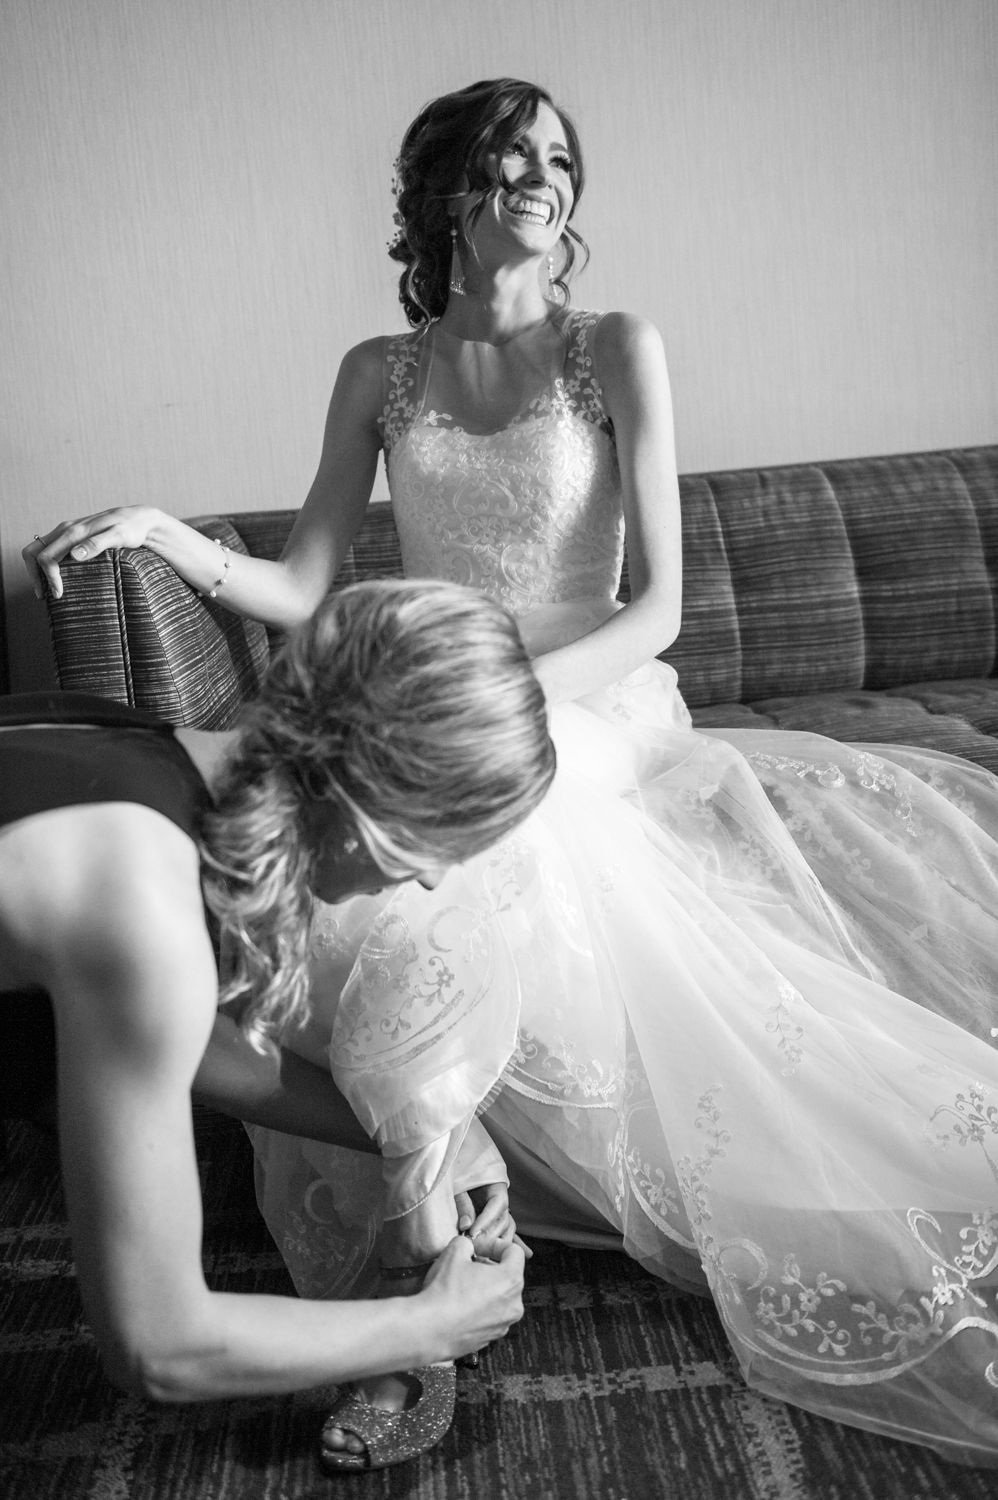 019_savidge_photography_wedding.jpg